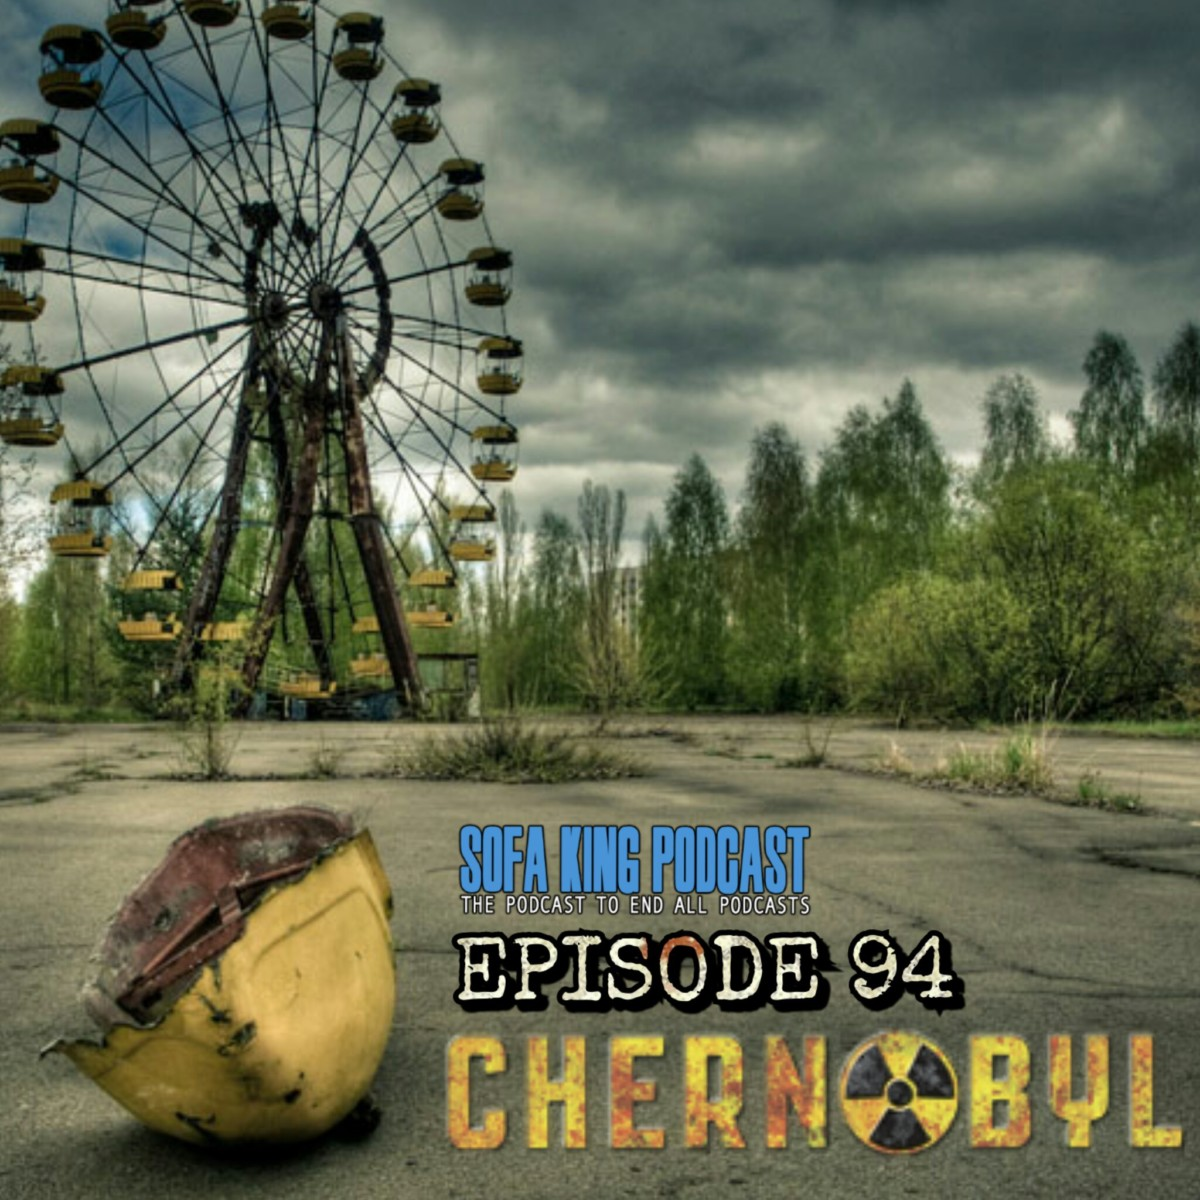 sofa king podcast outdoor wicker sofas and chairs episode 94 chernobyl fallout death heroism